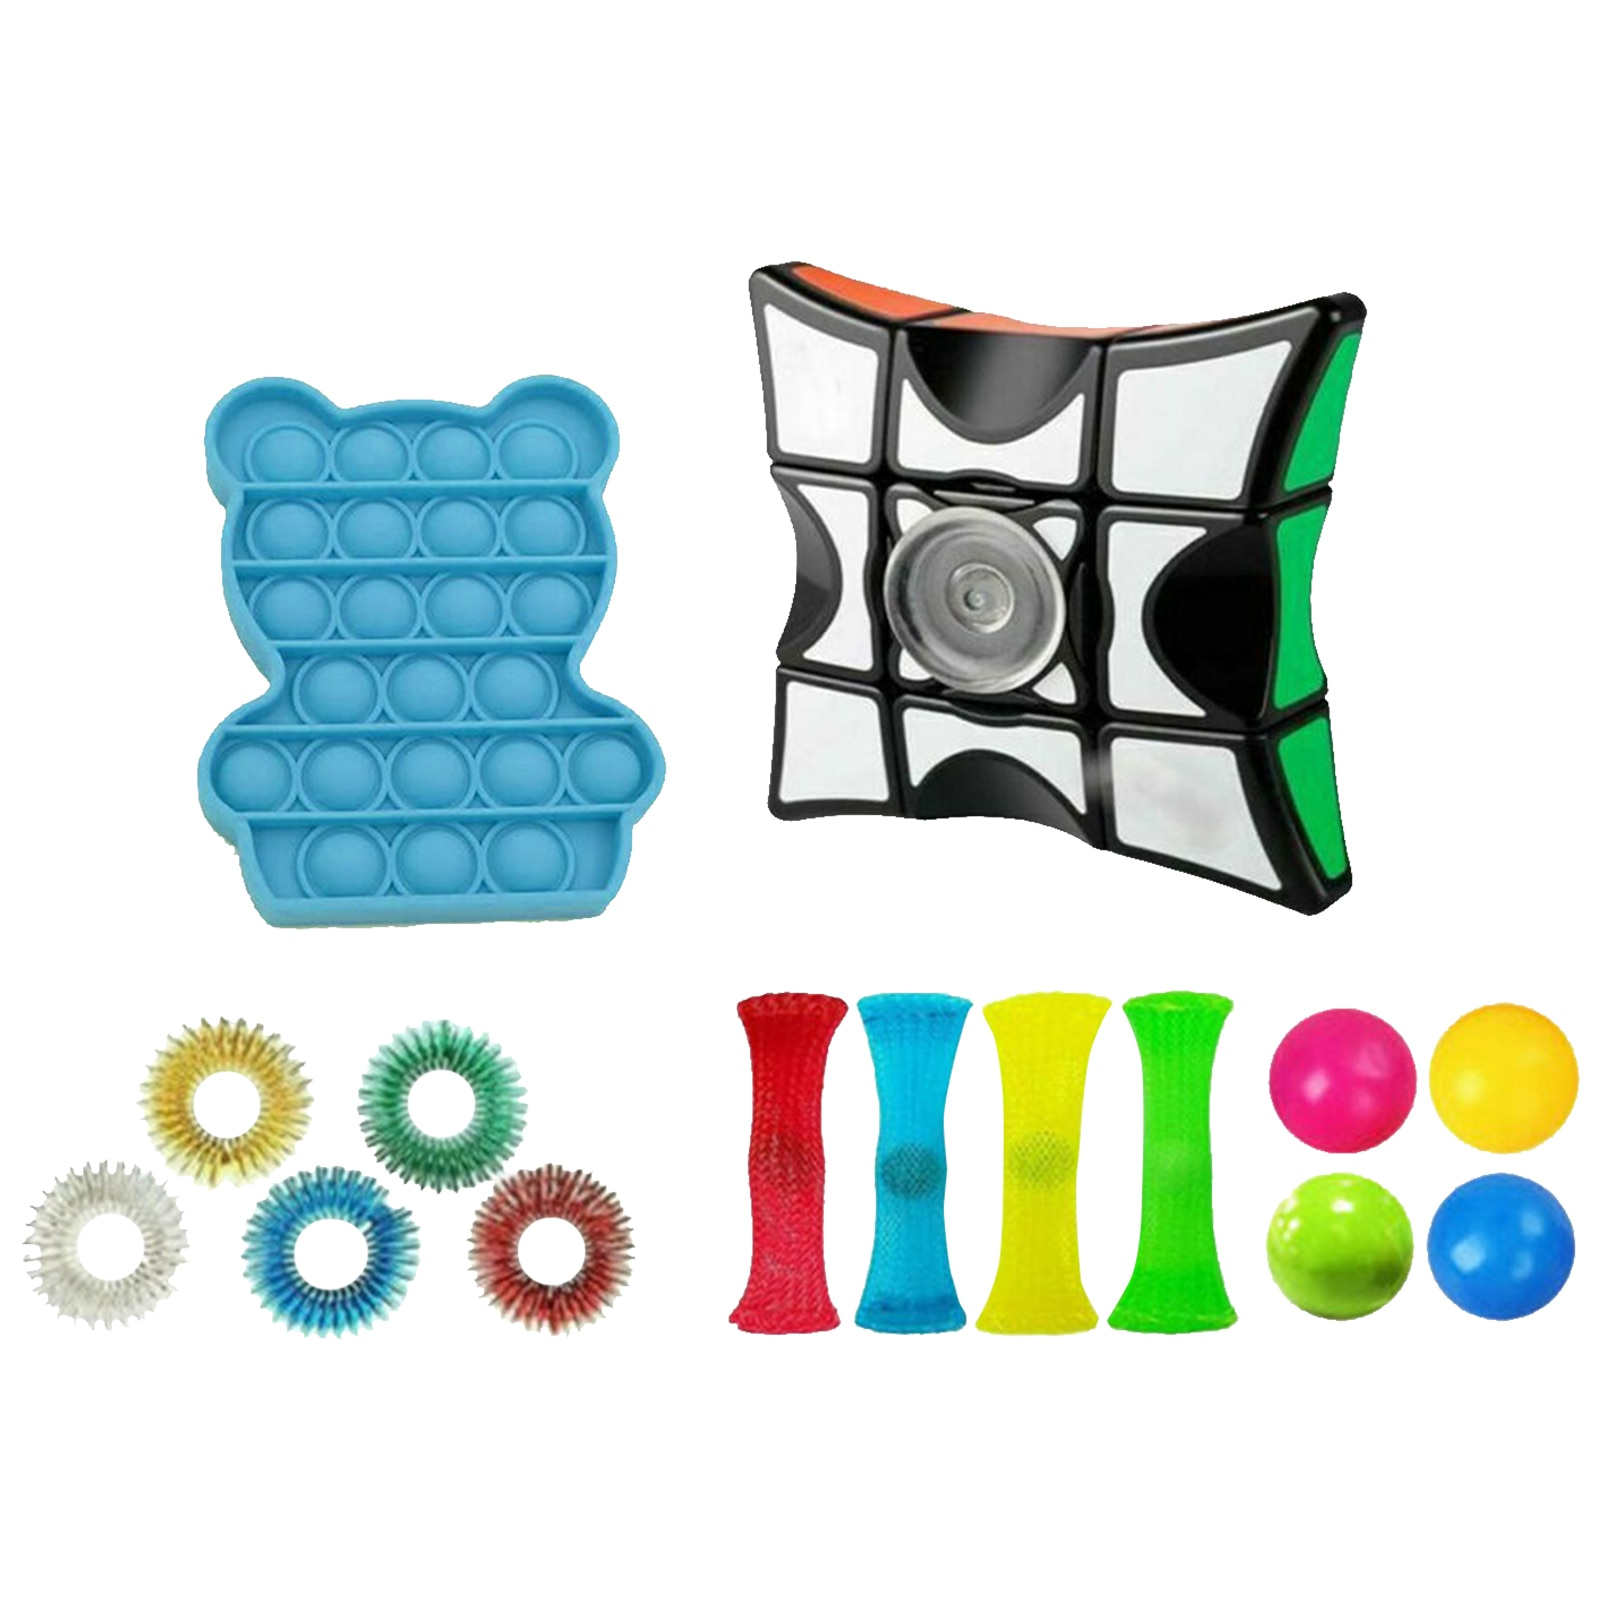 18Pcs Fidget Toys Anti Stress Toy Set Stretchy String Mesh Marble Relief Gift For Adults Girl Children Sensory Stress Relief Toy enlarge